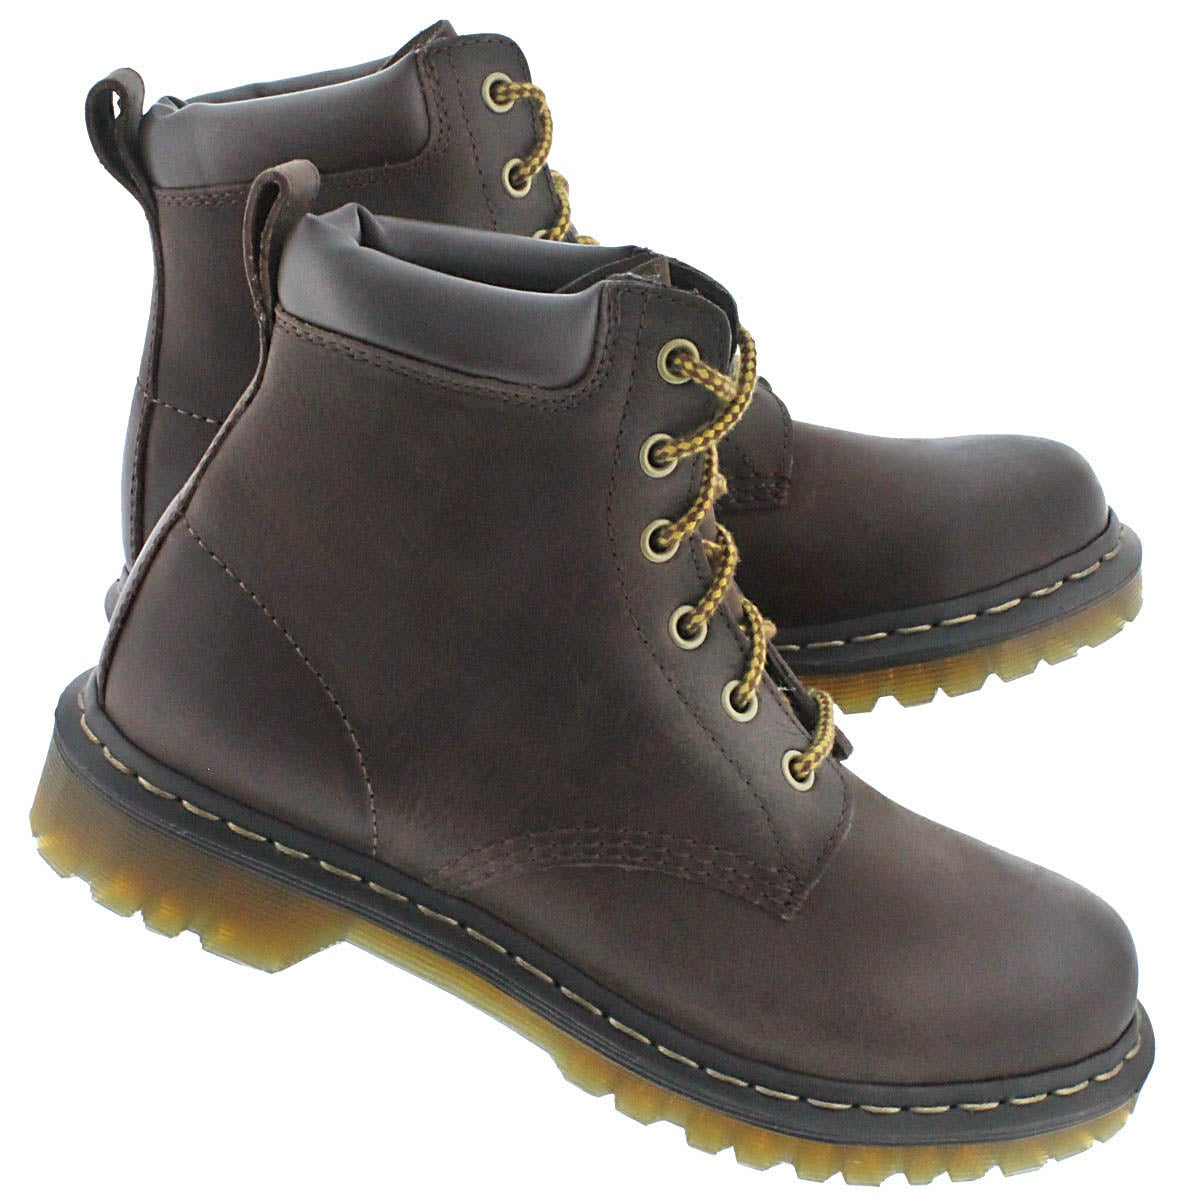 Lds Core 939 brown hiking boot